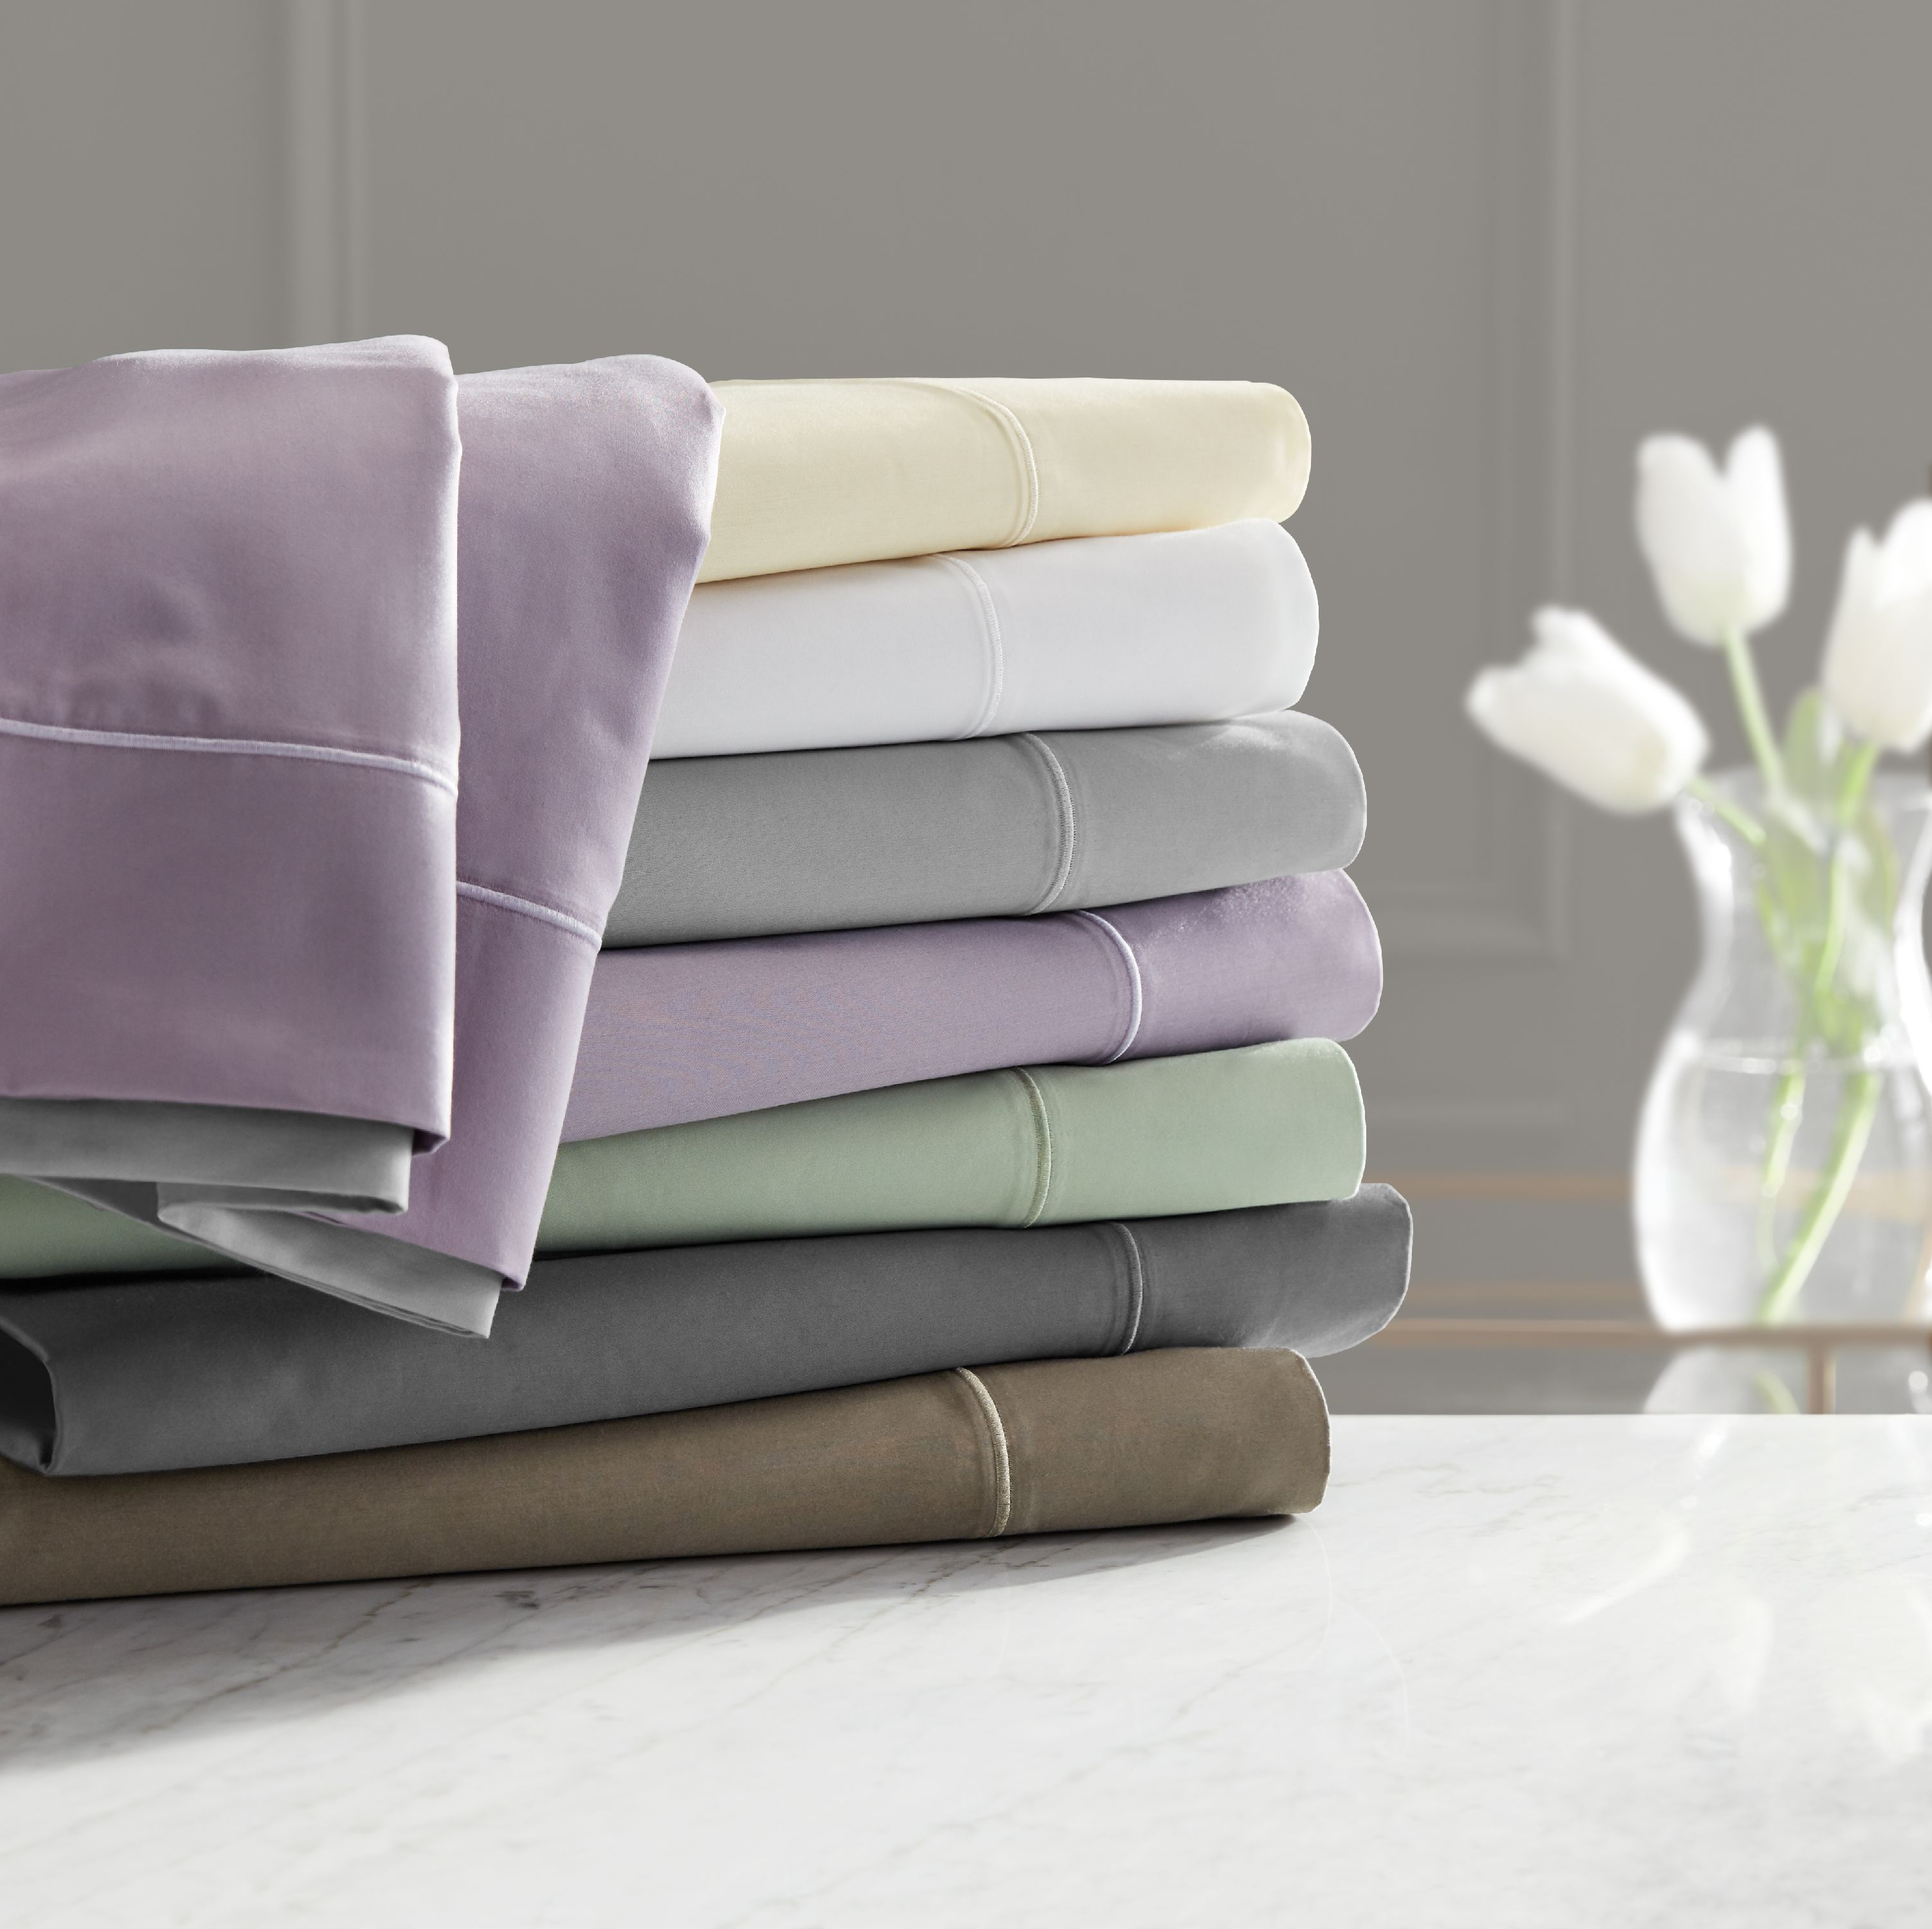 Hotel Style 1000 Thread Count Sheet Set